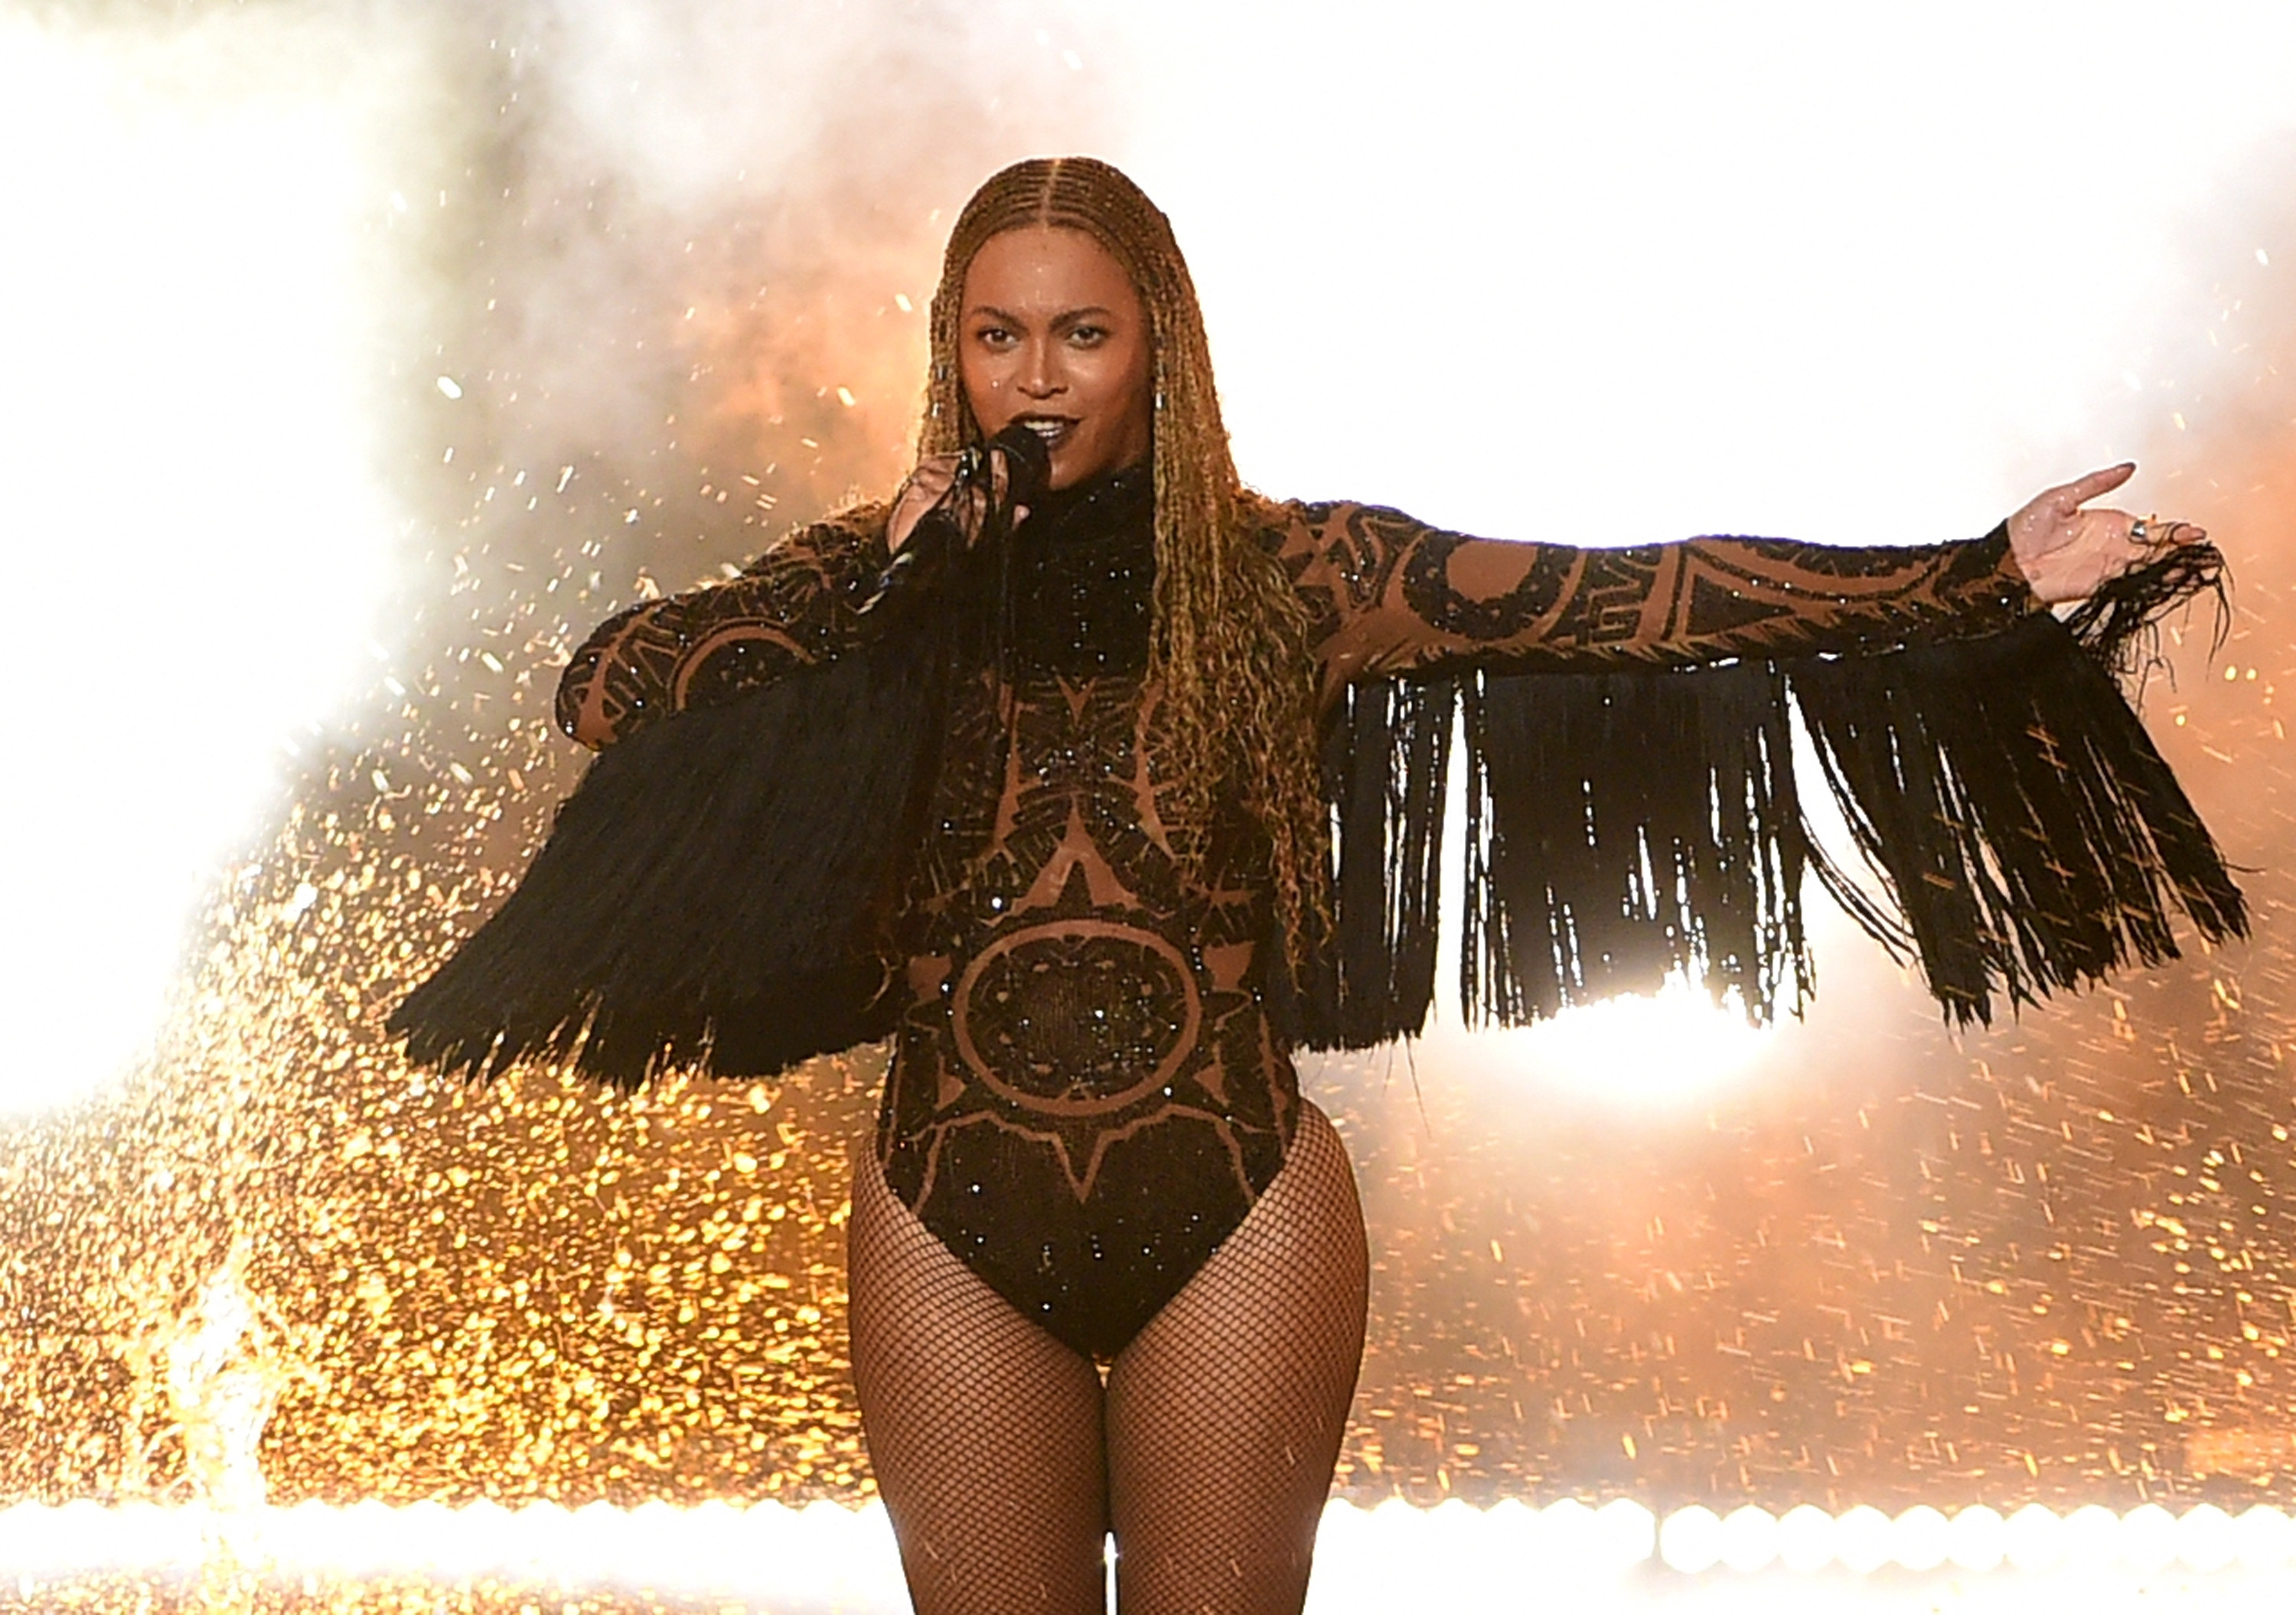 LOS ANGELES, CA - JUNE 26:  Recording artist Beyonce performs onstage during the 2016 BET Awards at the Microsoft Theater on June 26, 2016 in Los Angeles, California.  (Photo by Kevin Winter/BET/Getty Images for BET)